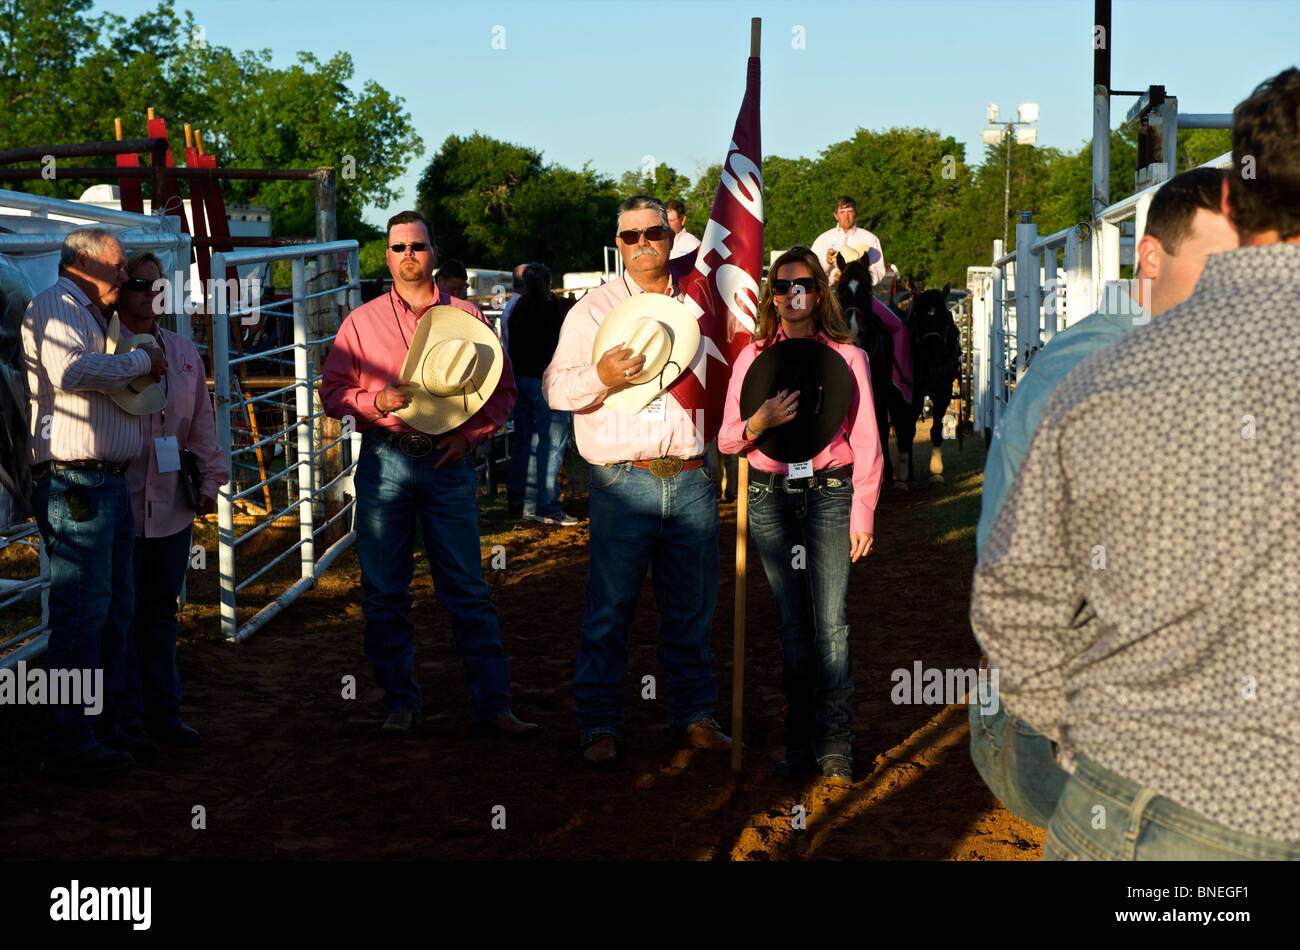 Members of PRCA rodeo singing their national anthem in Smalltown, Bridgeport, Texas, USA Stock Photo